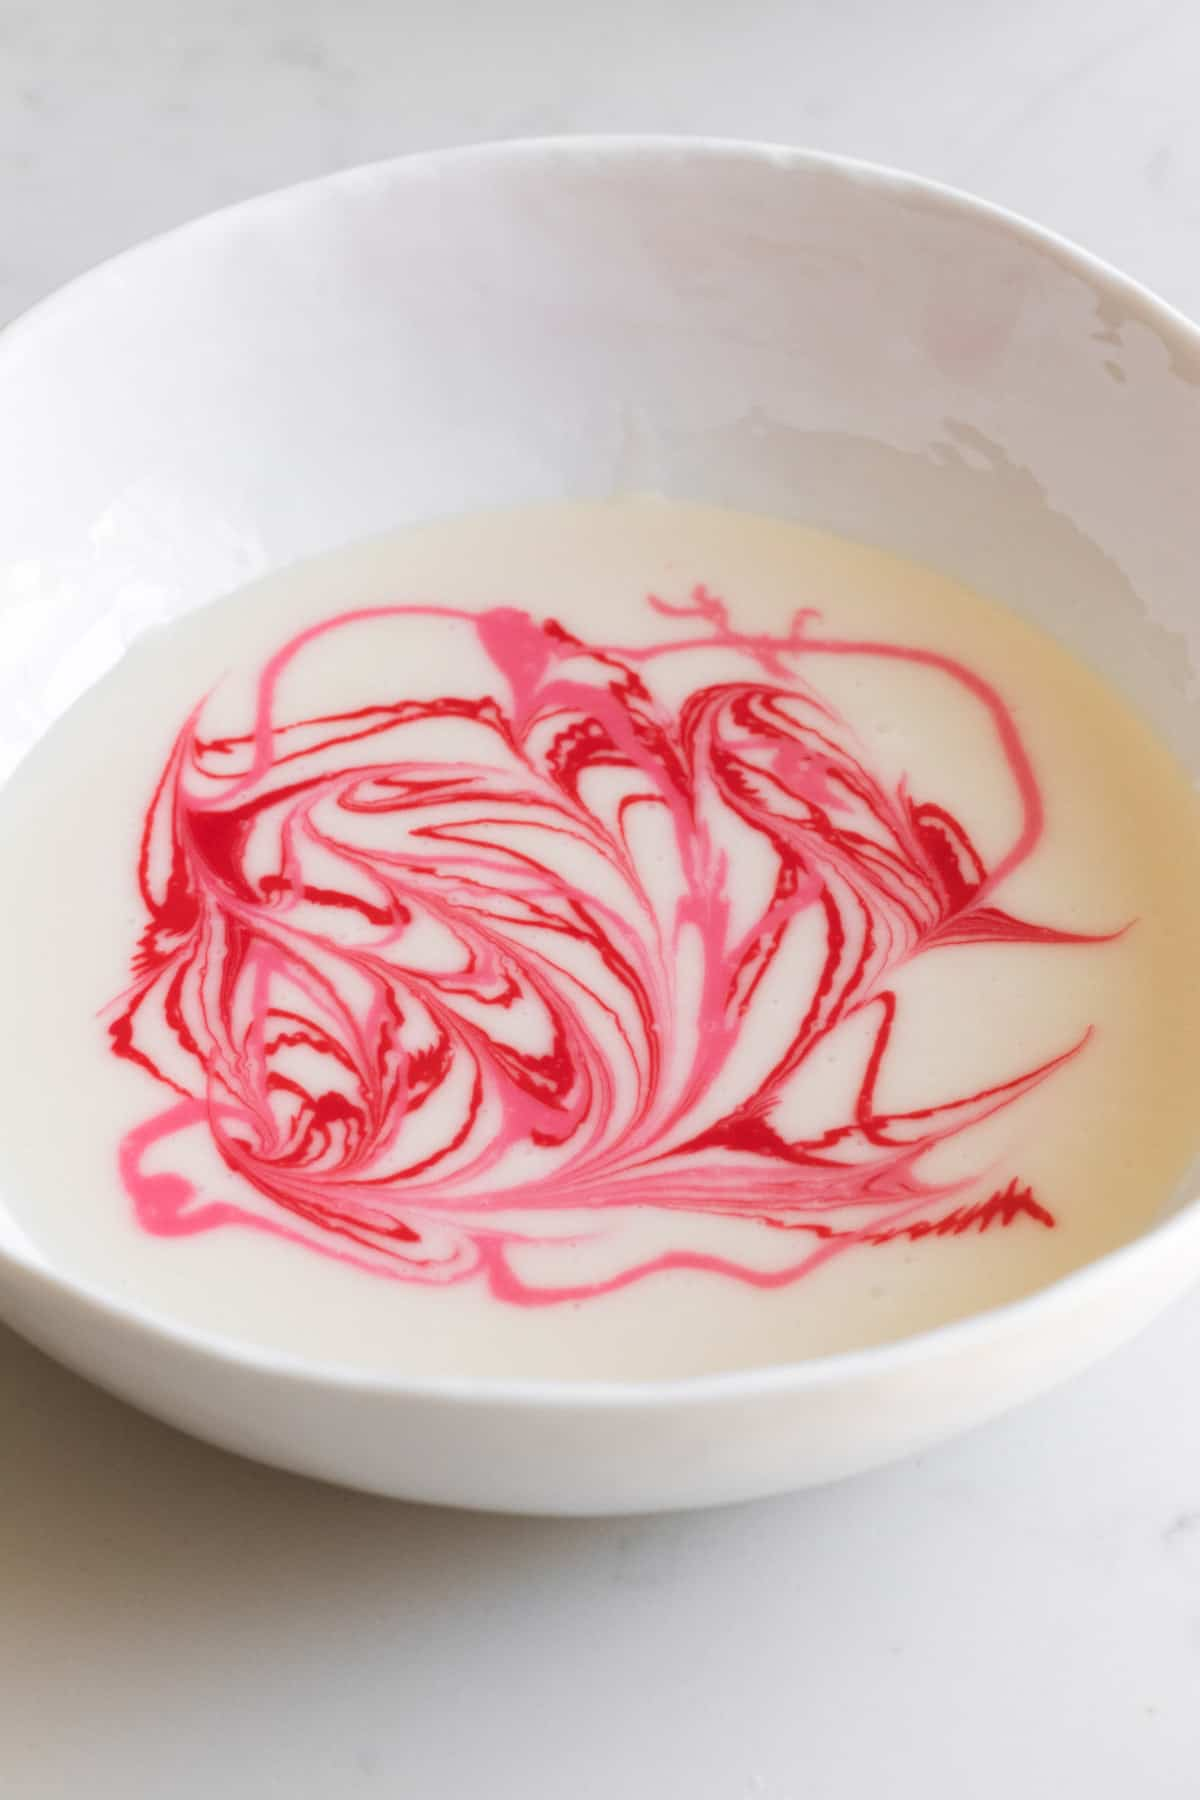 bowl of white icing with pink and red swirls in it